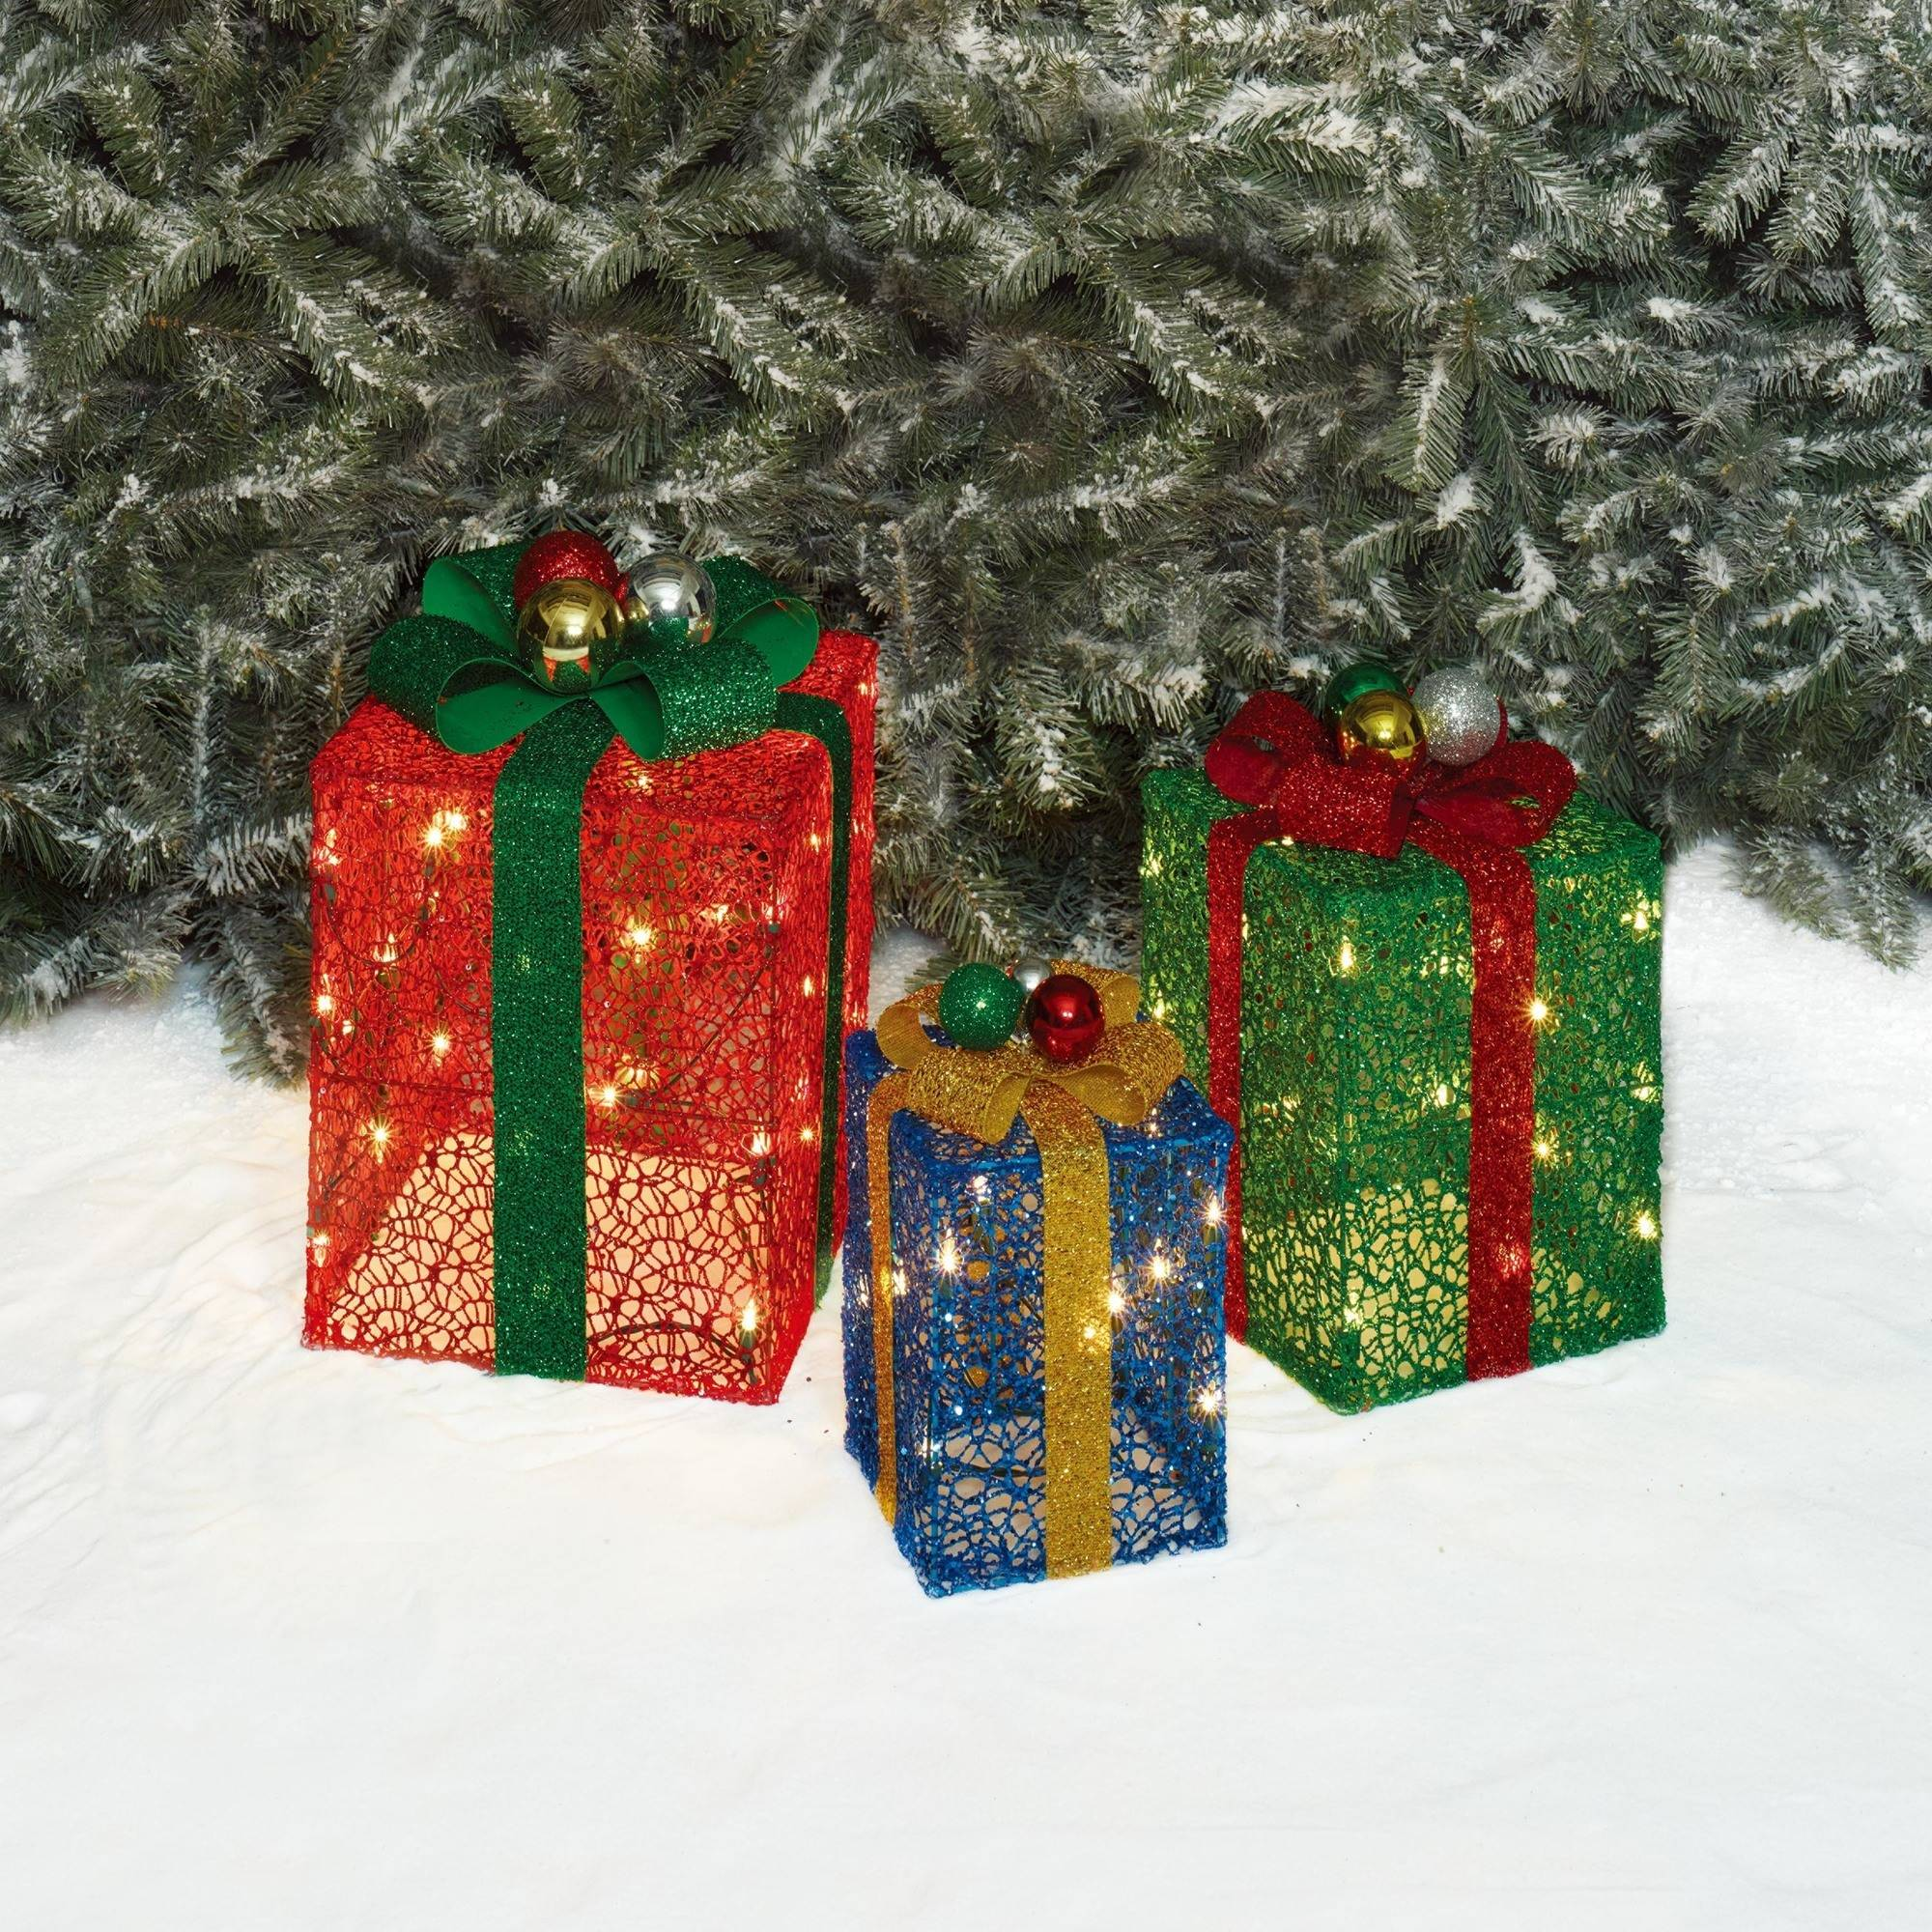 holiday time christmas decor set of 3 glittering mesh gift box sculpture walmartcom - Holiday Time Christmas Decorations